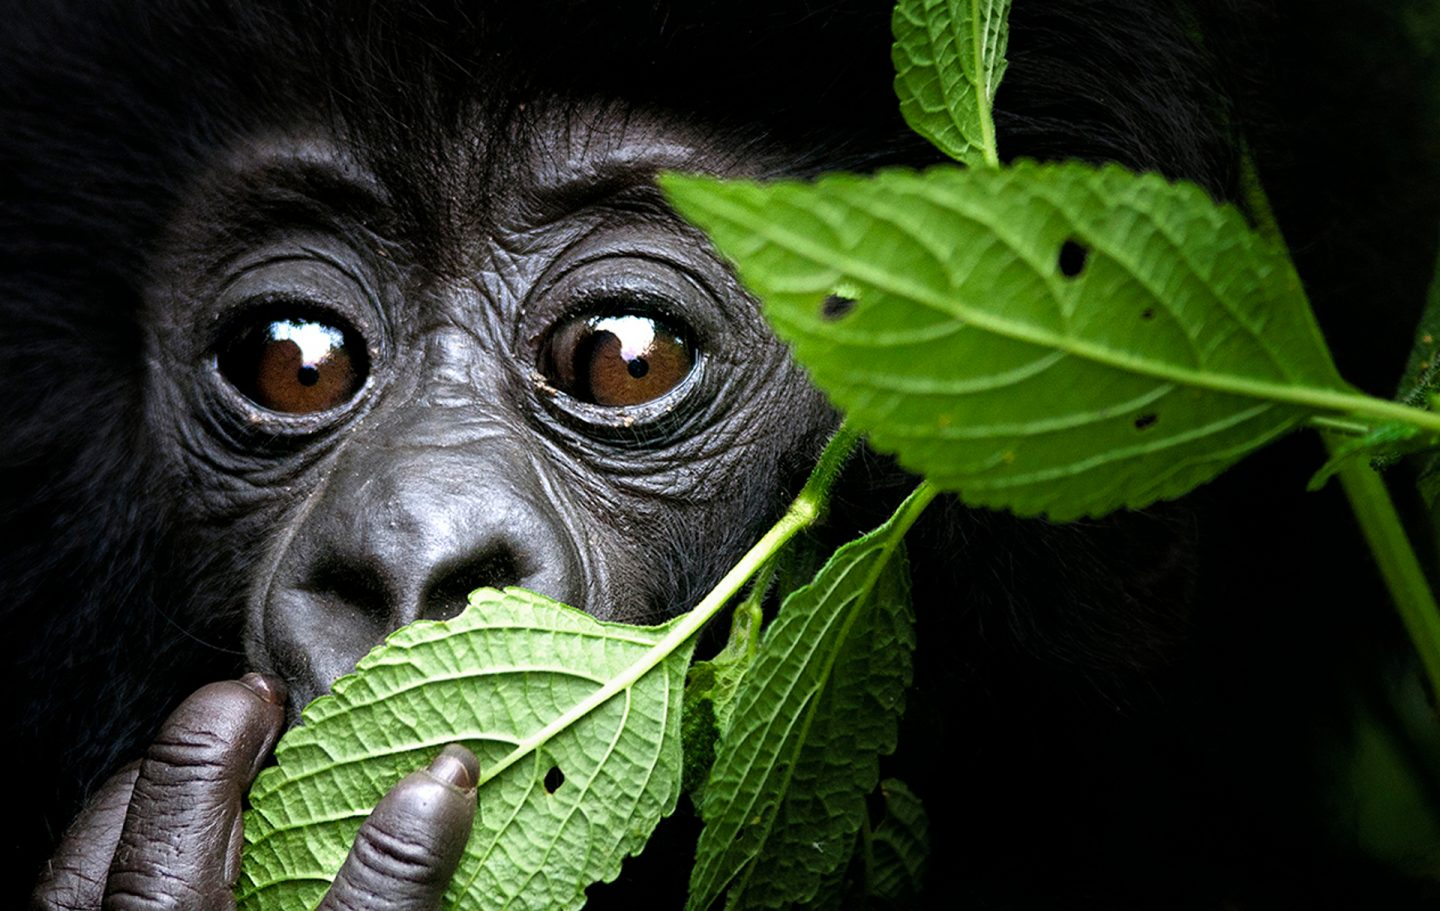 Green Leaf Gorilla © David Yarrow